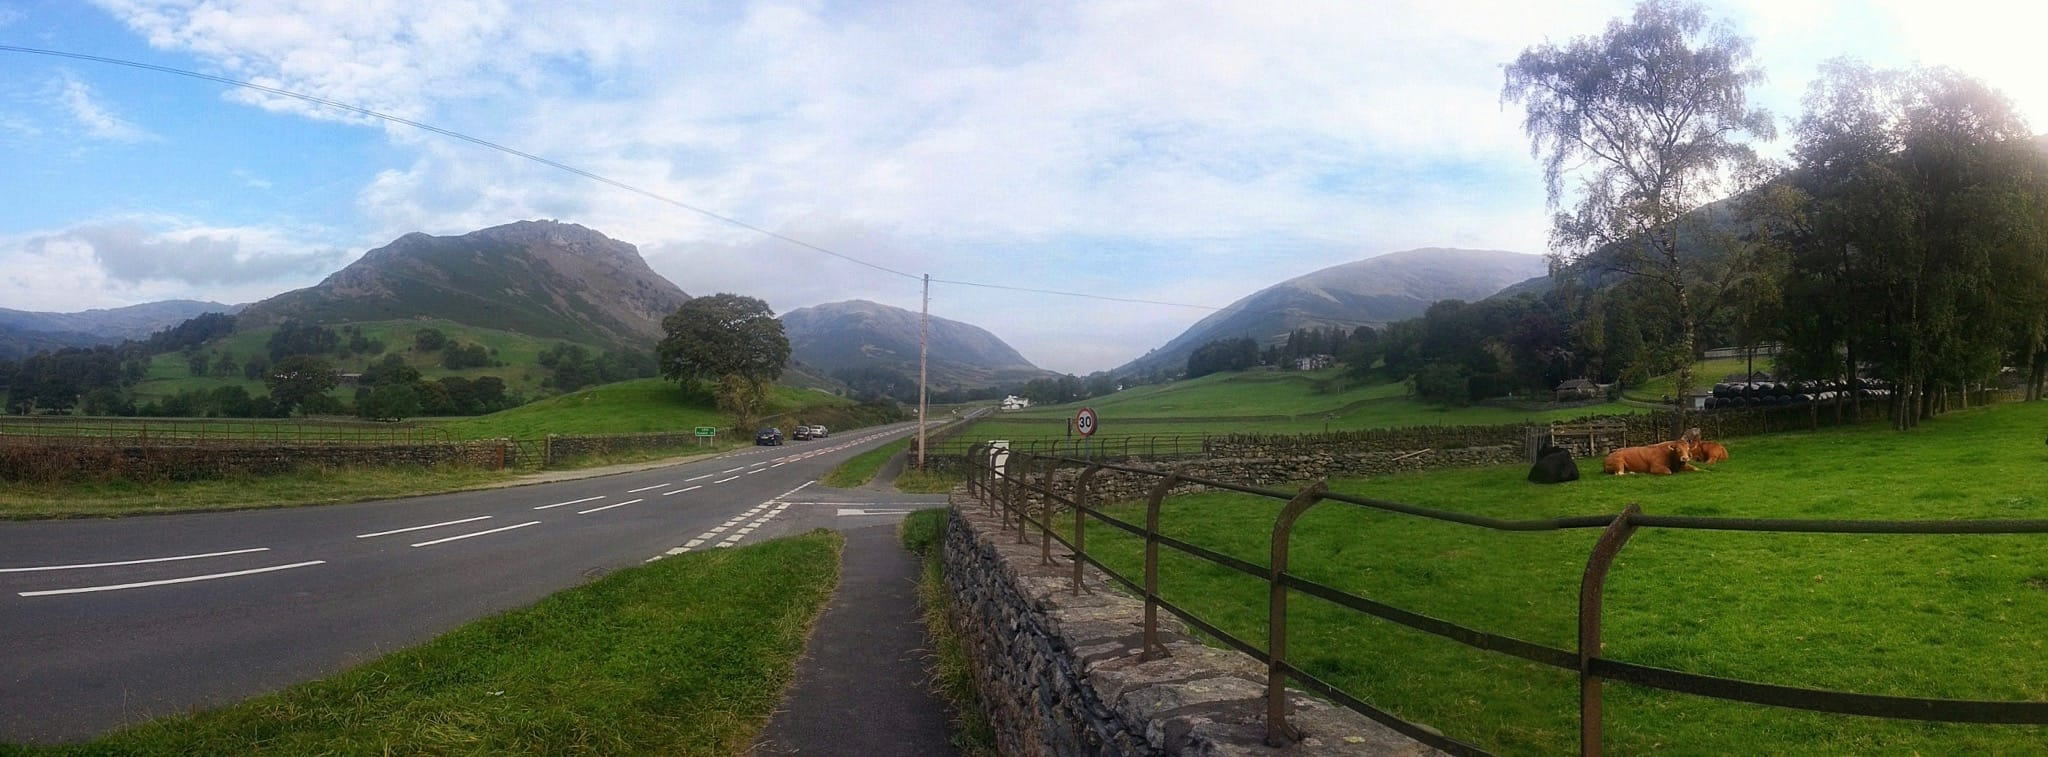 A panoramic view north of Grasmere village from near the A591 trunk road. Helm crag on the left, Steel Fell in the centre, Seat Sandal on the right